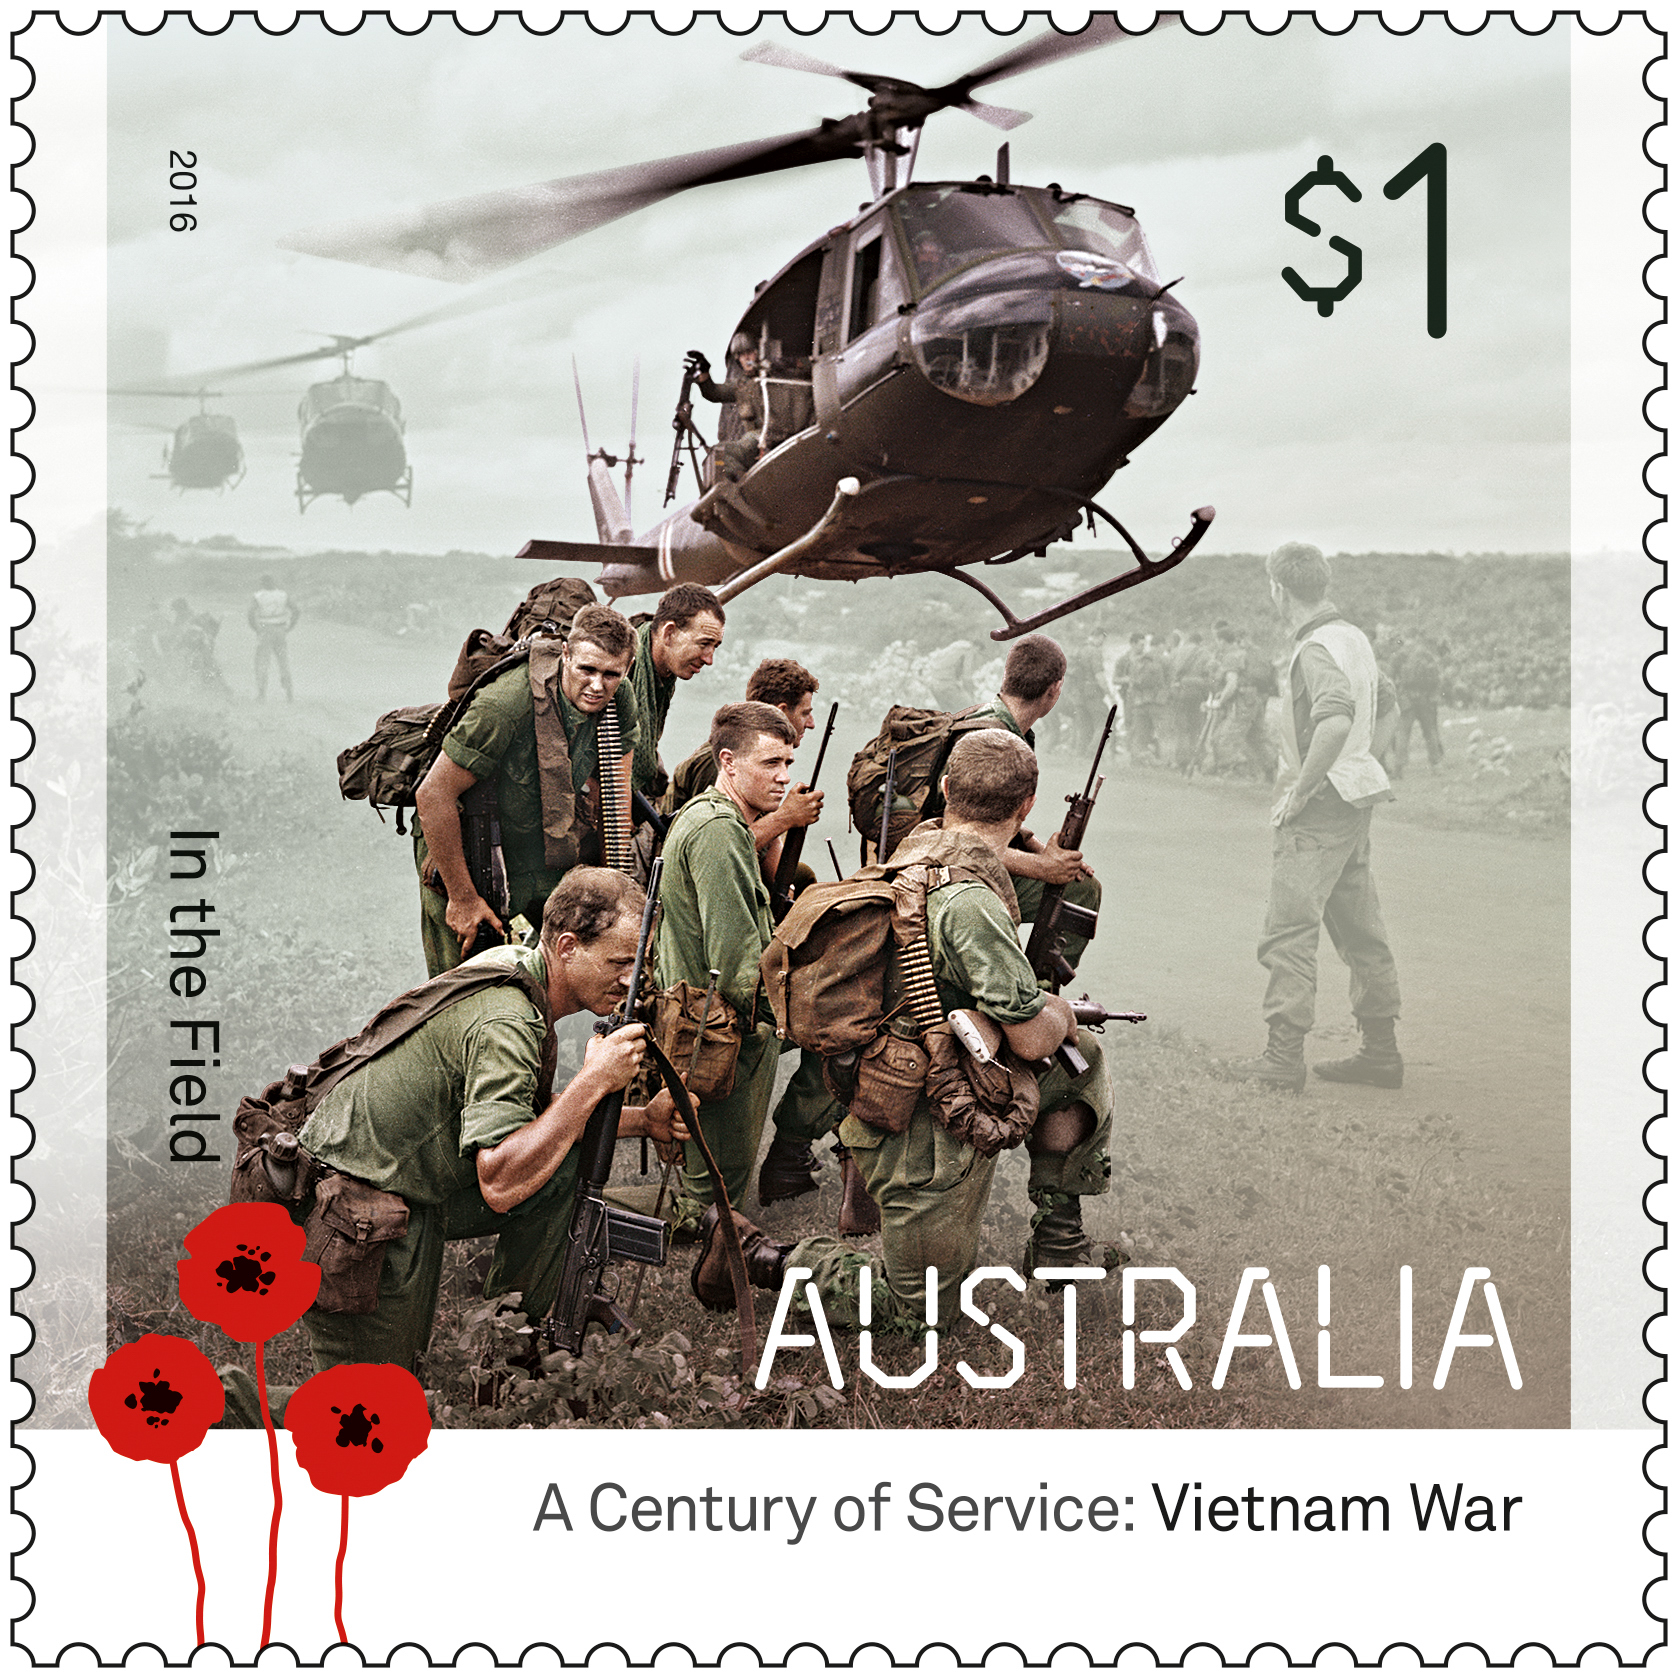 australias involvement in the vietnam war essay Australia became involved in the vietnam war, because australia felt threatened by the expansion of communism the cold war between russia and the united.